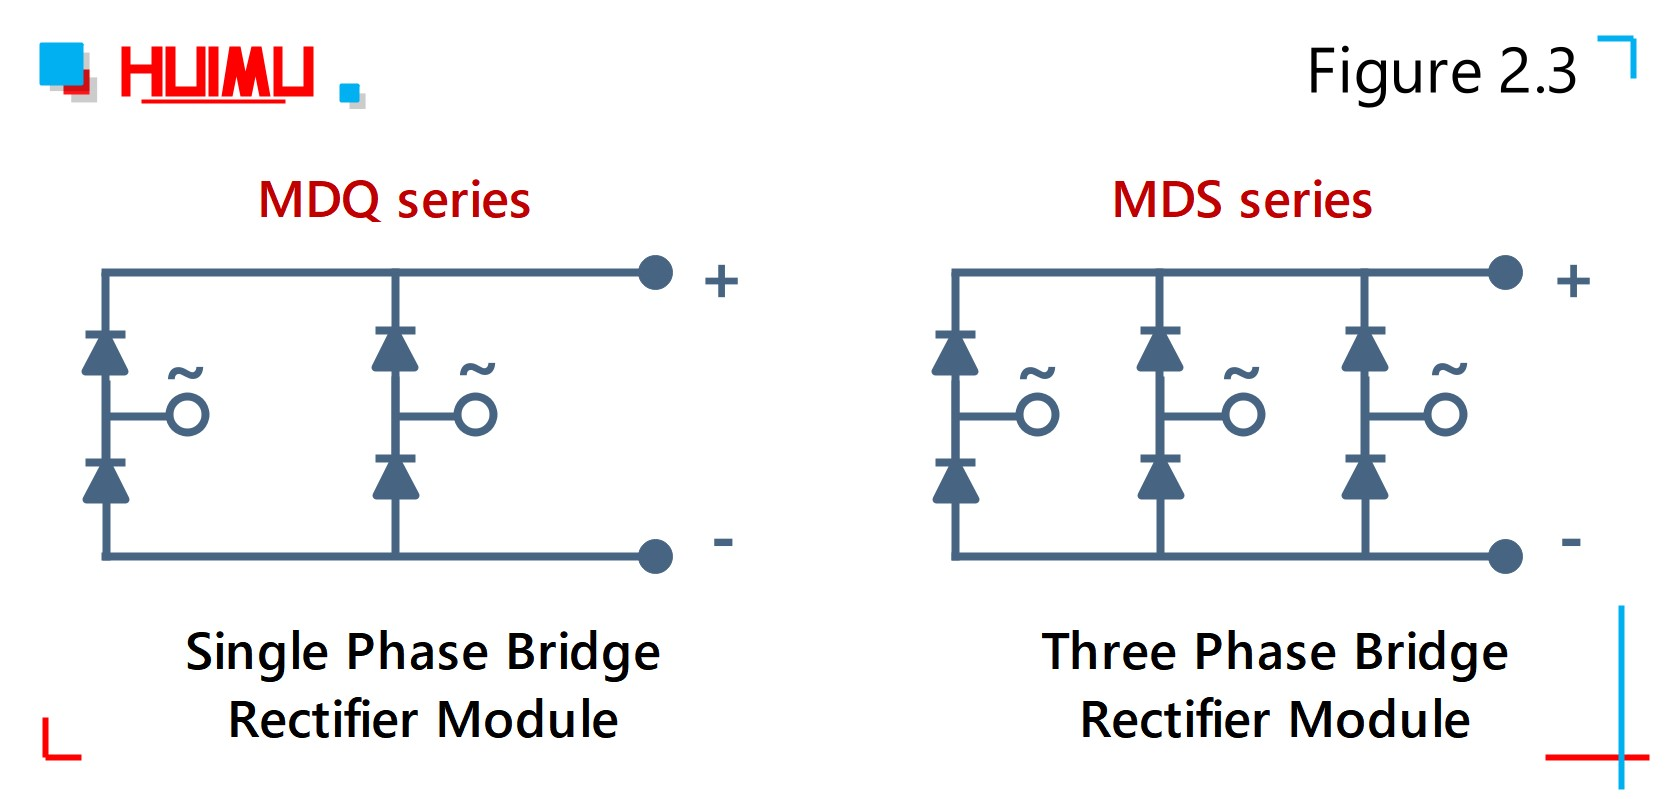 Circuit of single phase / three phase bridge rectification module